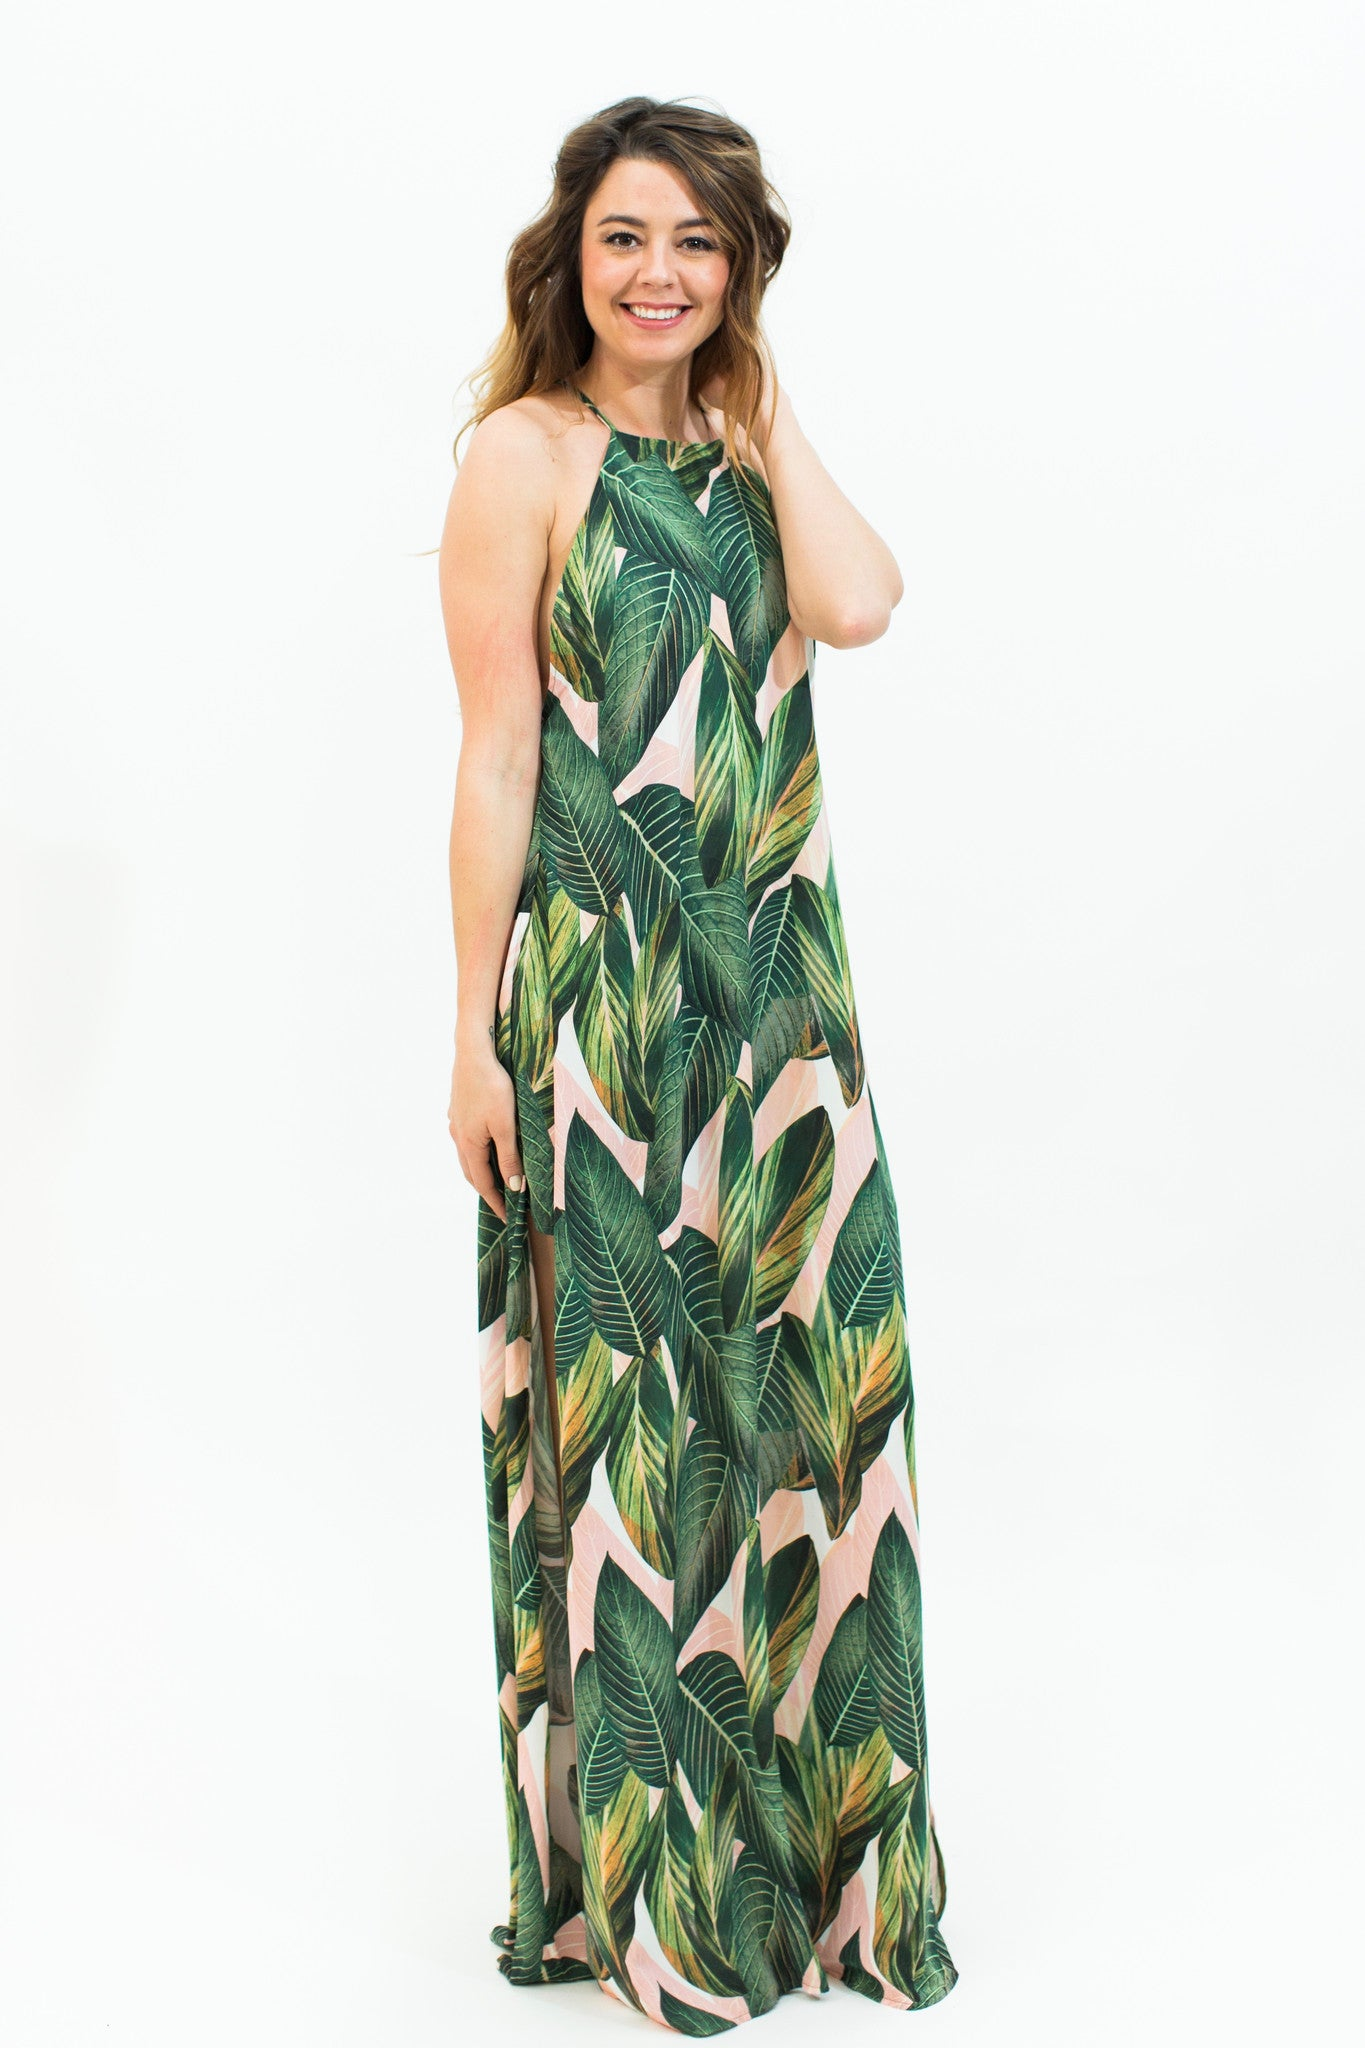 Peachy Palm Maxi Dress